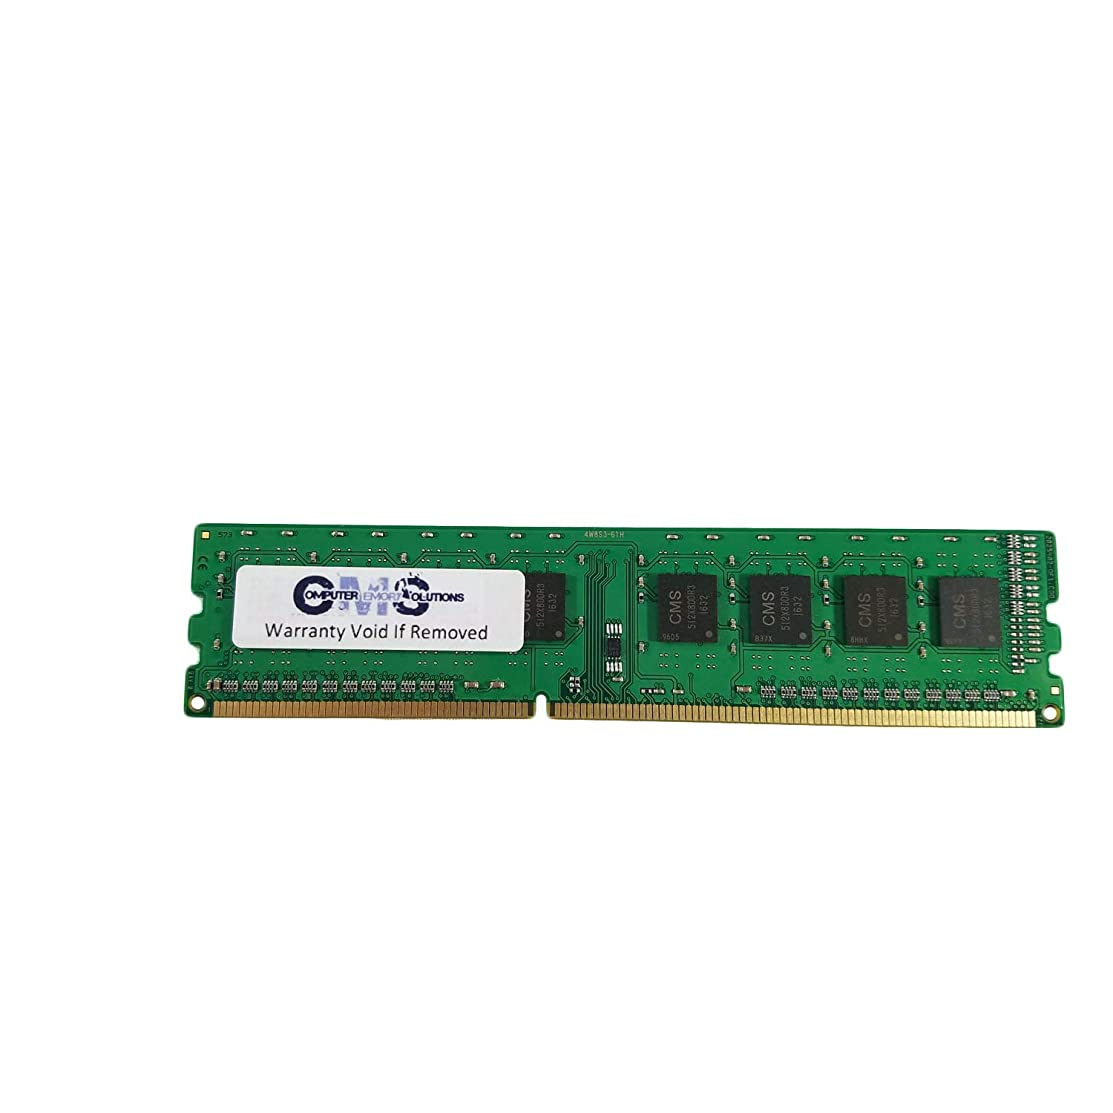 8Gb 1X8Gb Memory Ram Compatible with Intel Dh61Be, Dh61Cr, Dh61Dl, Dh61Sa, Dh61Ww Mainboard By CMS Brand A65